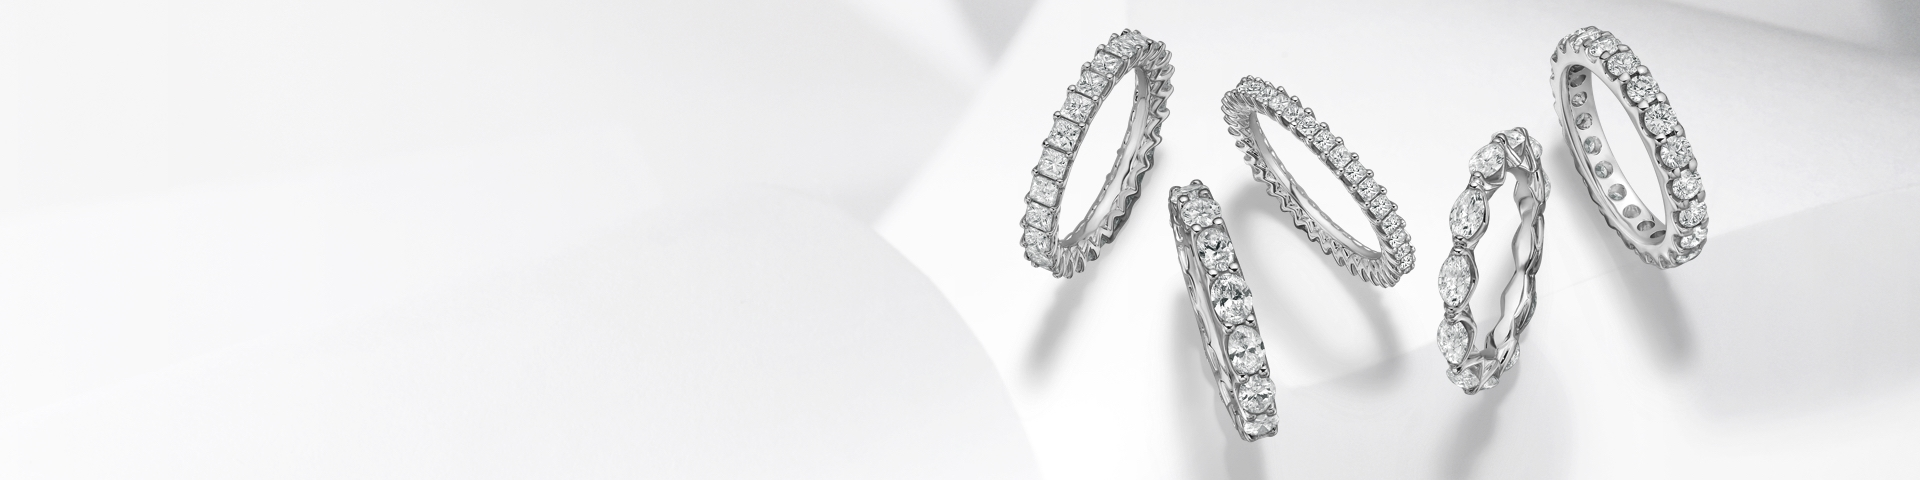 White gold diamond eternity bands on a grey background.